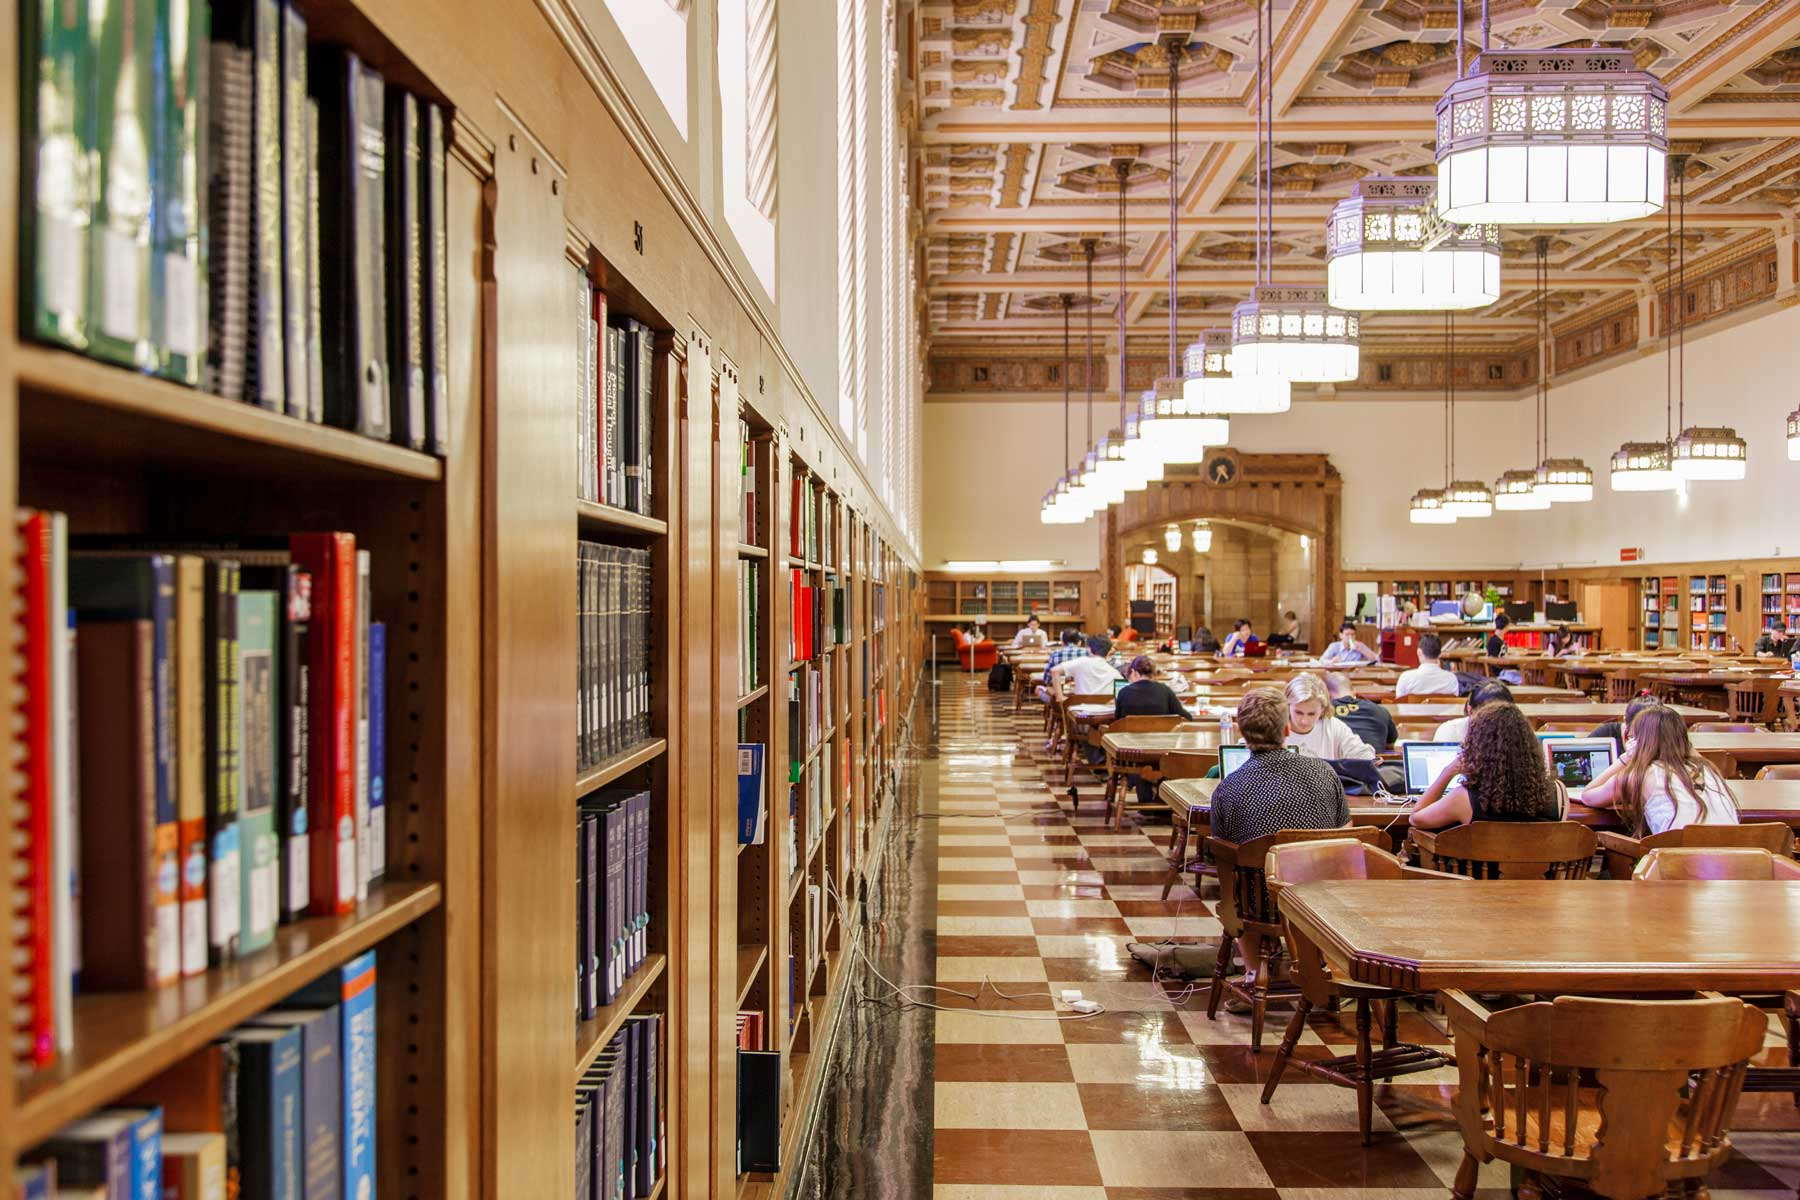 My favorite places to study at USC - Viterbi Voices